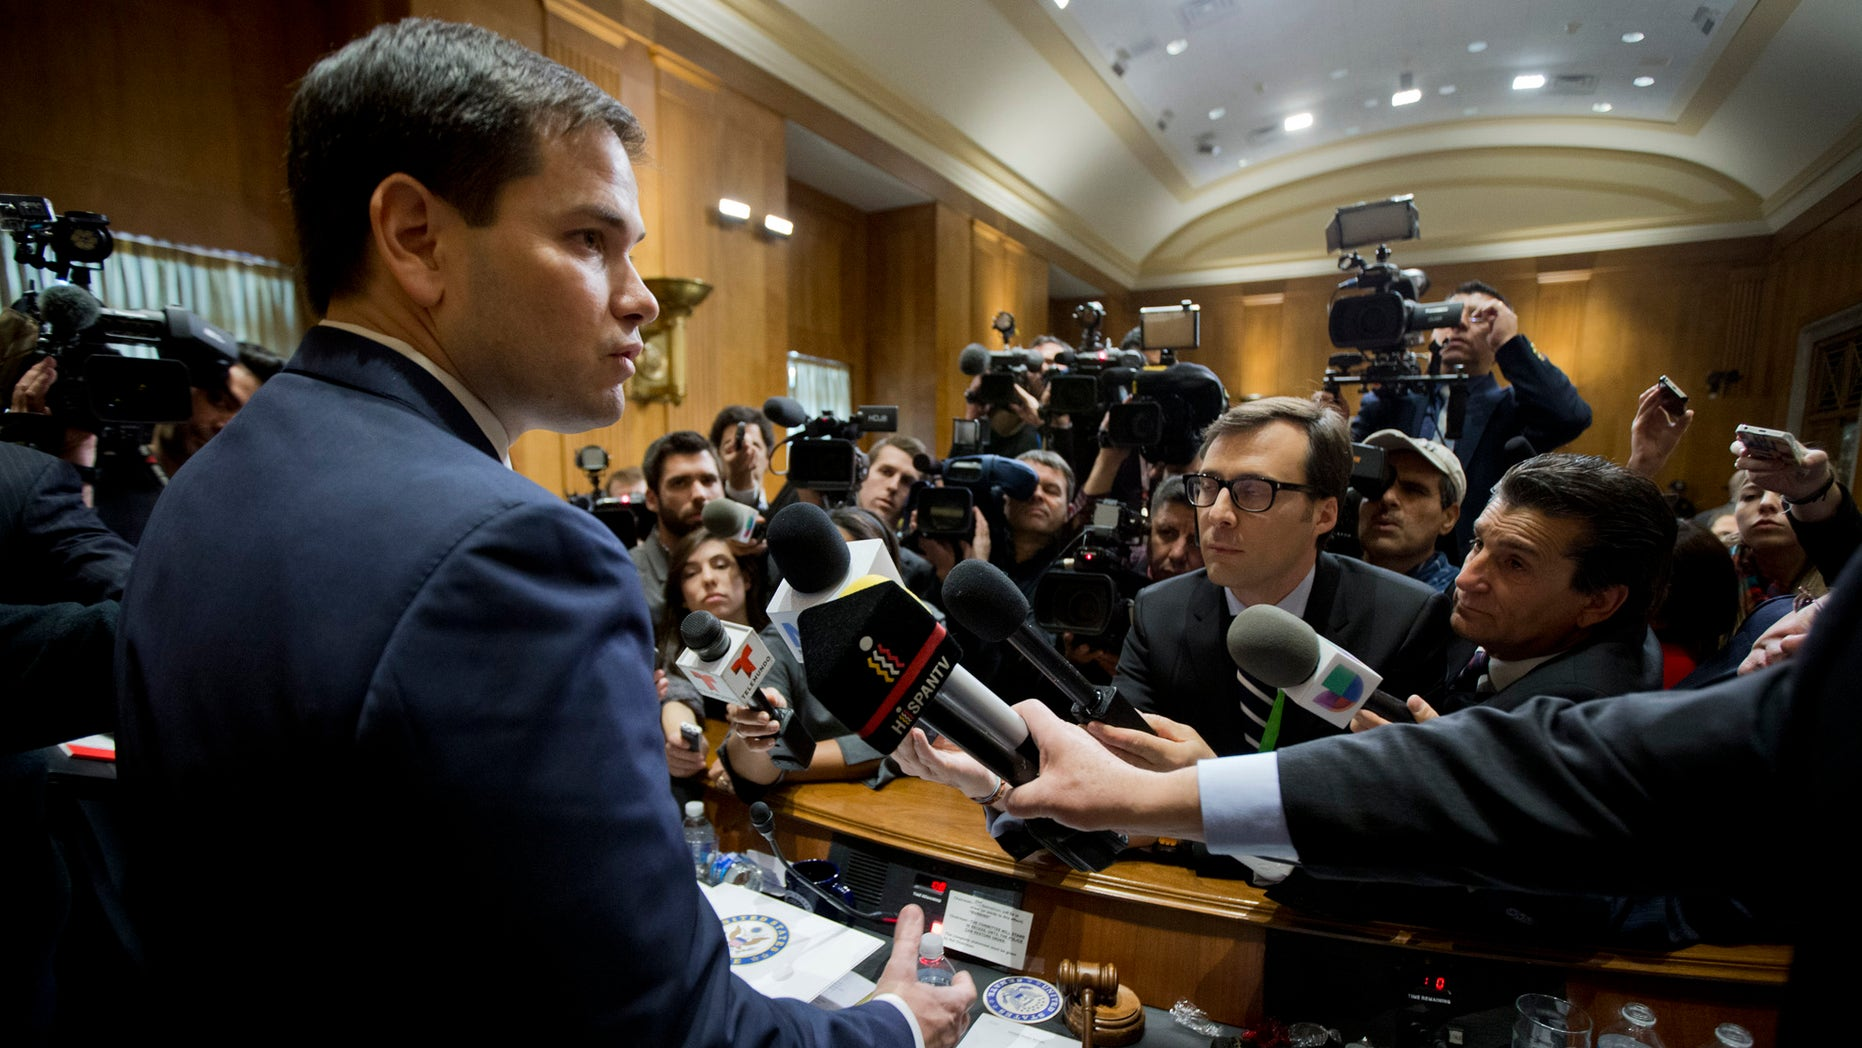 Sen. Marco Rubio speaks to reporters following a hearing on Cuba on Capitol Hill Tuesday, Feb. 3, 2015.